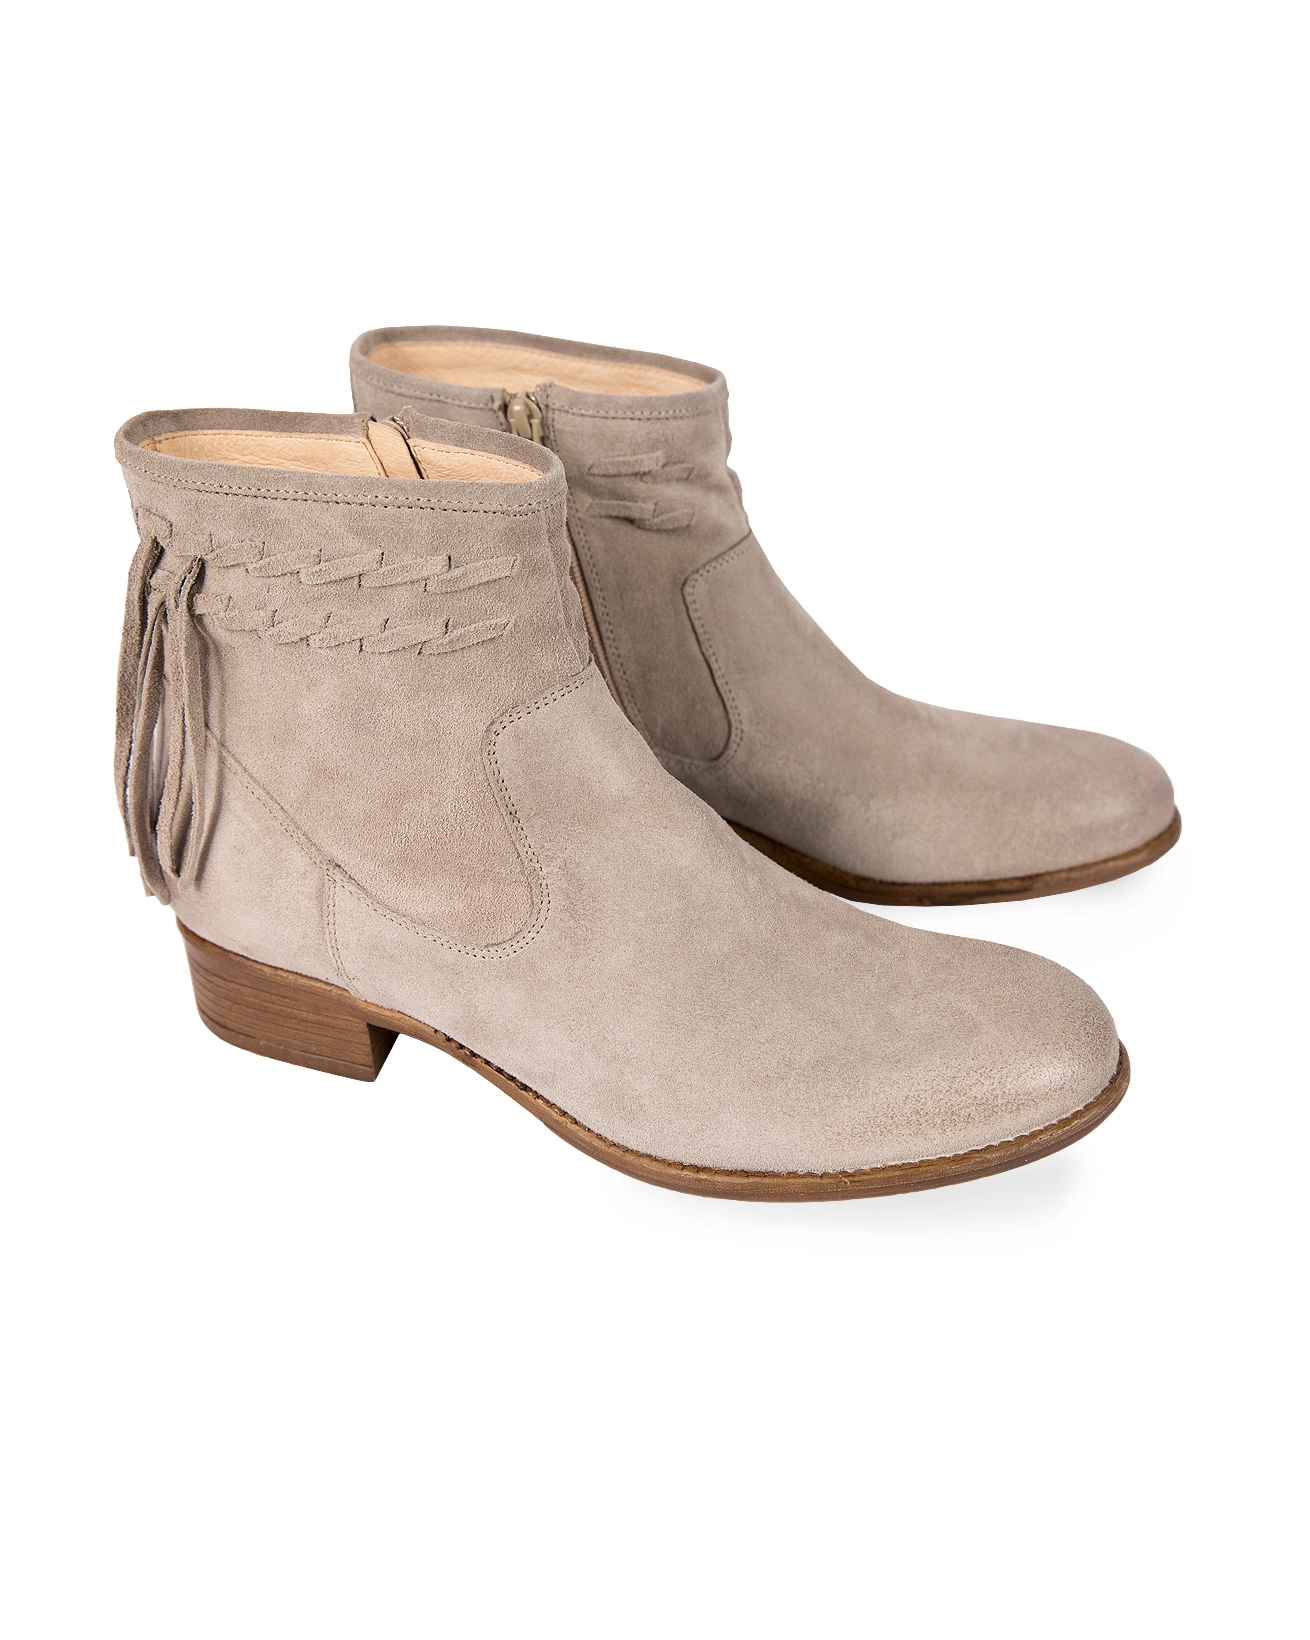 Pale grey Suede Ankle Boots with Fringe Details - Size 37 - 10b